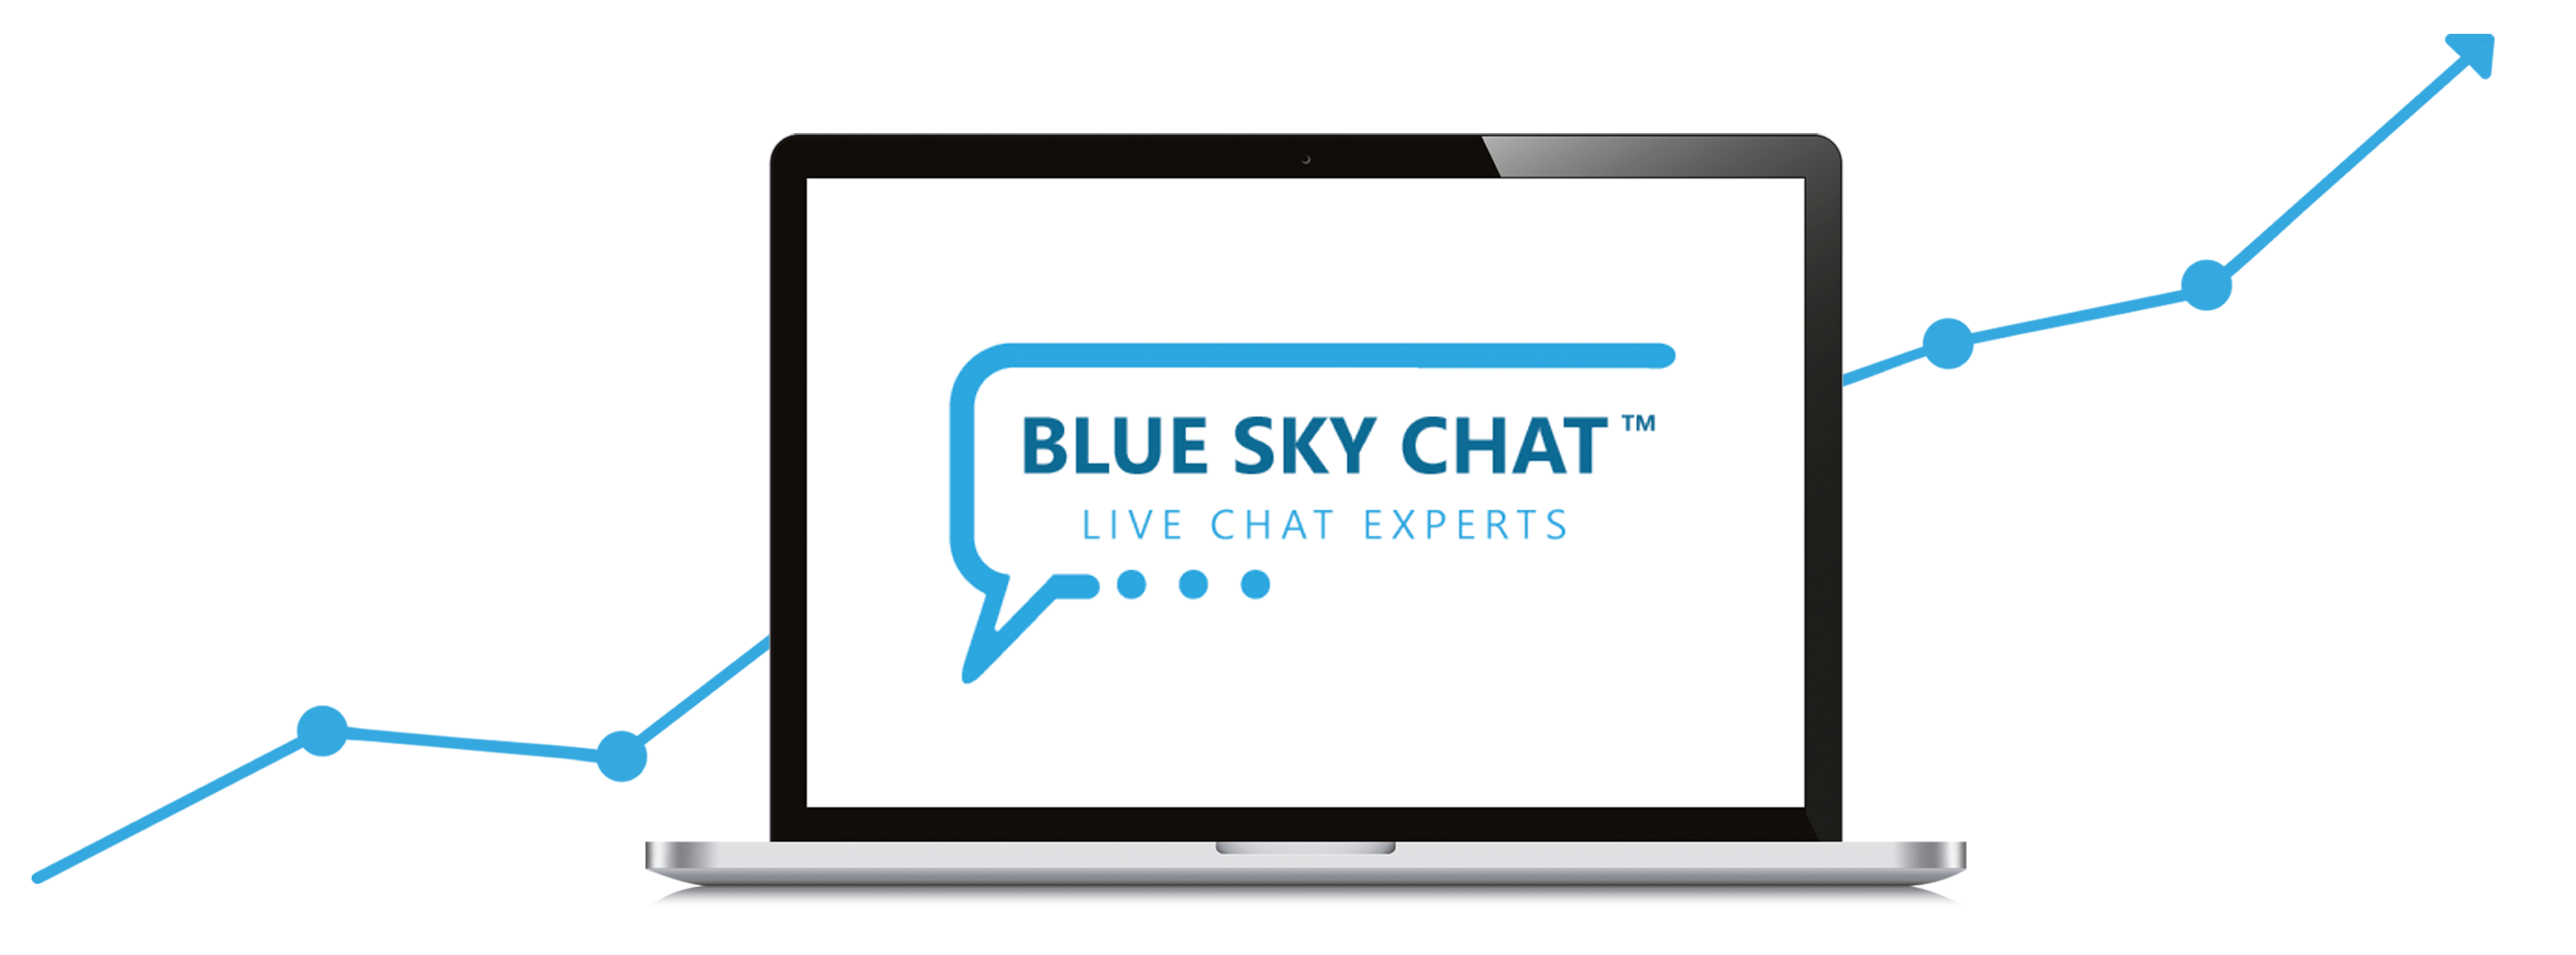 Computer with a logo of Blue Sky Chat